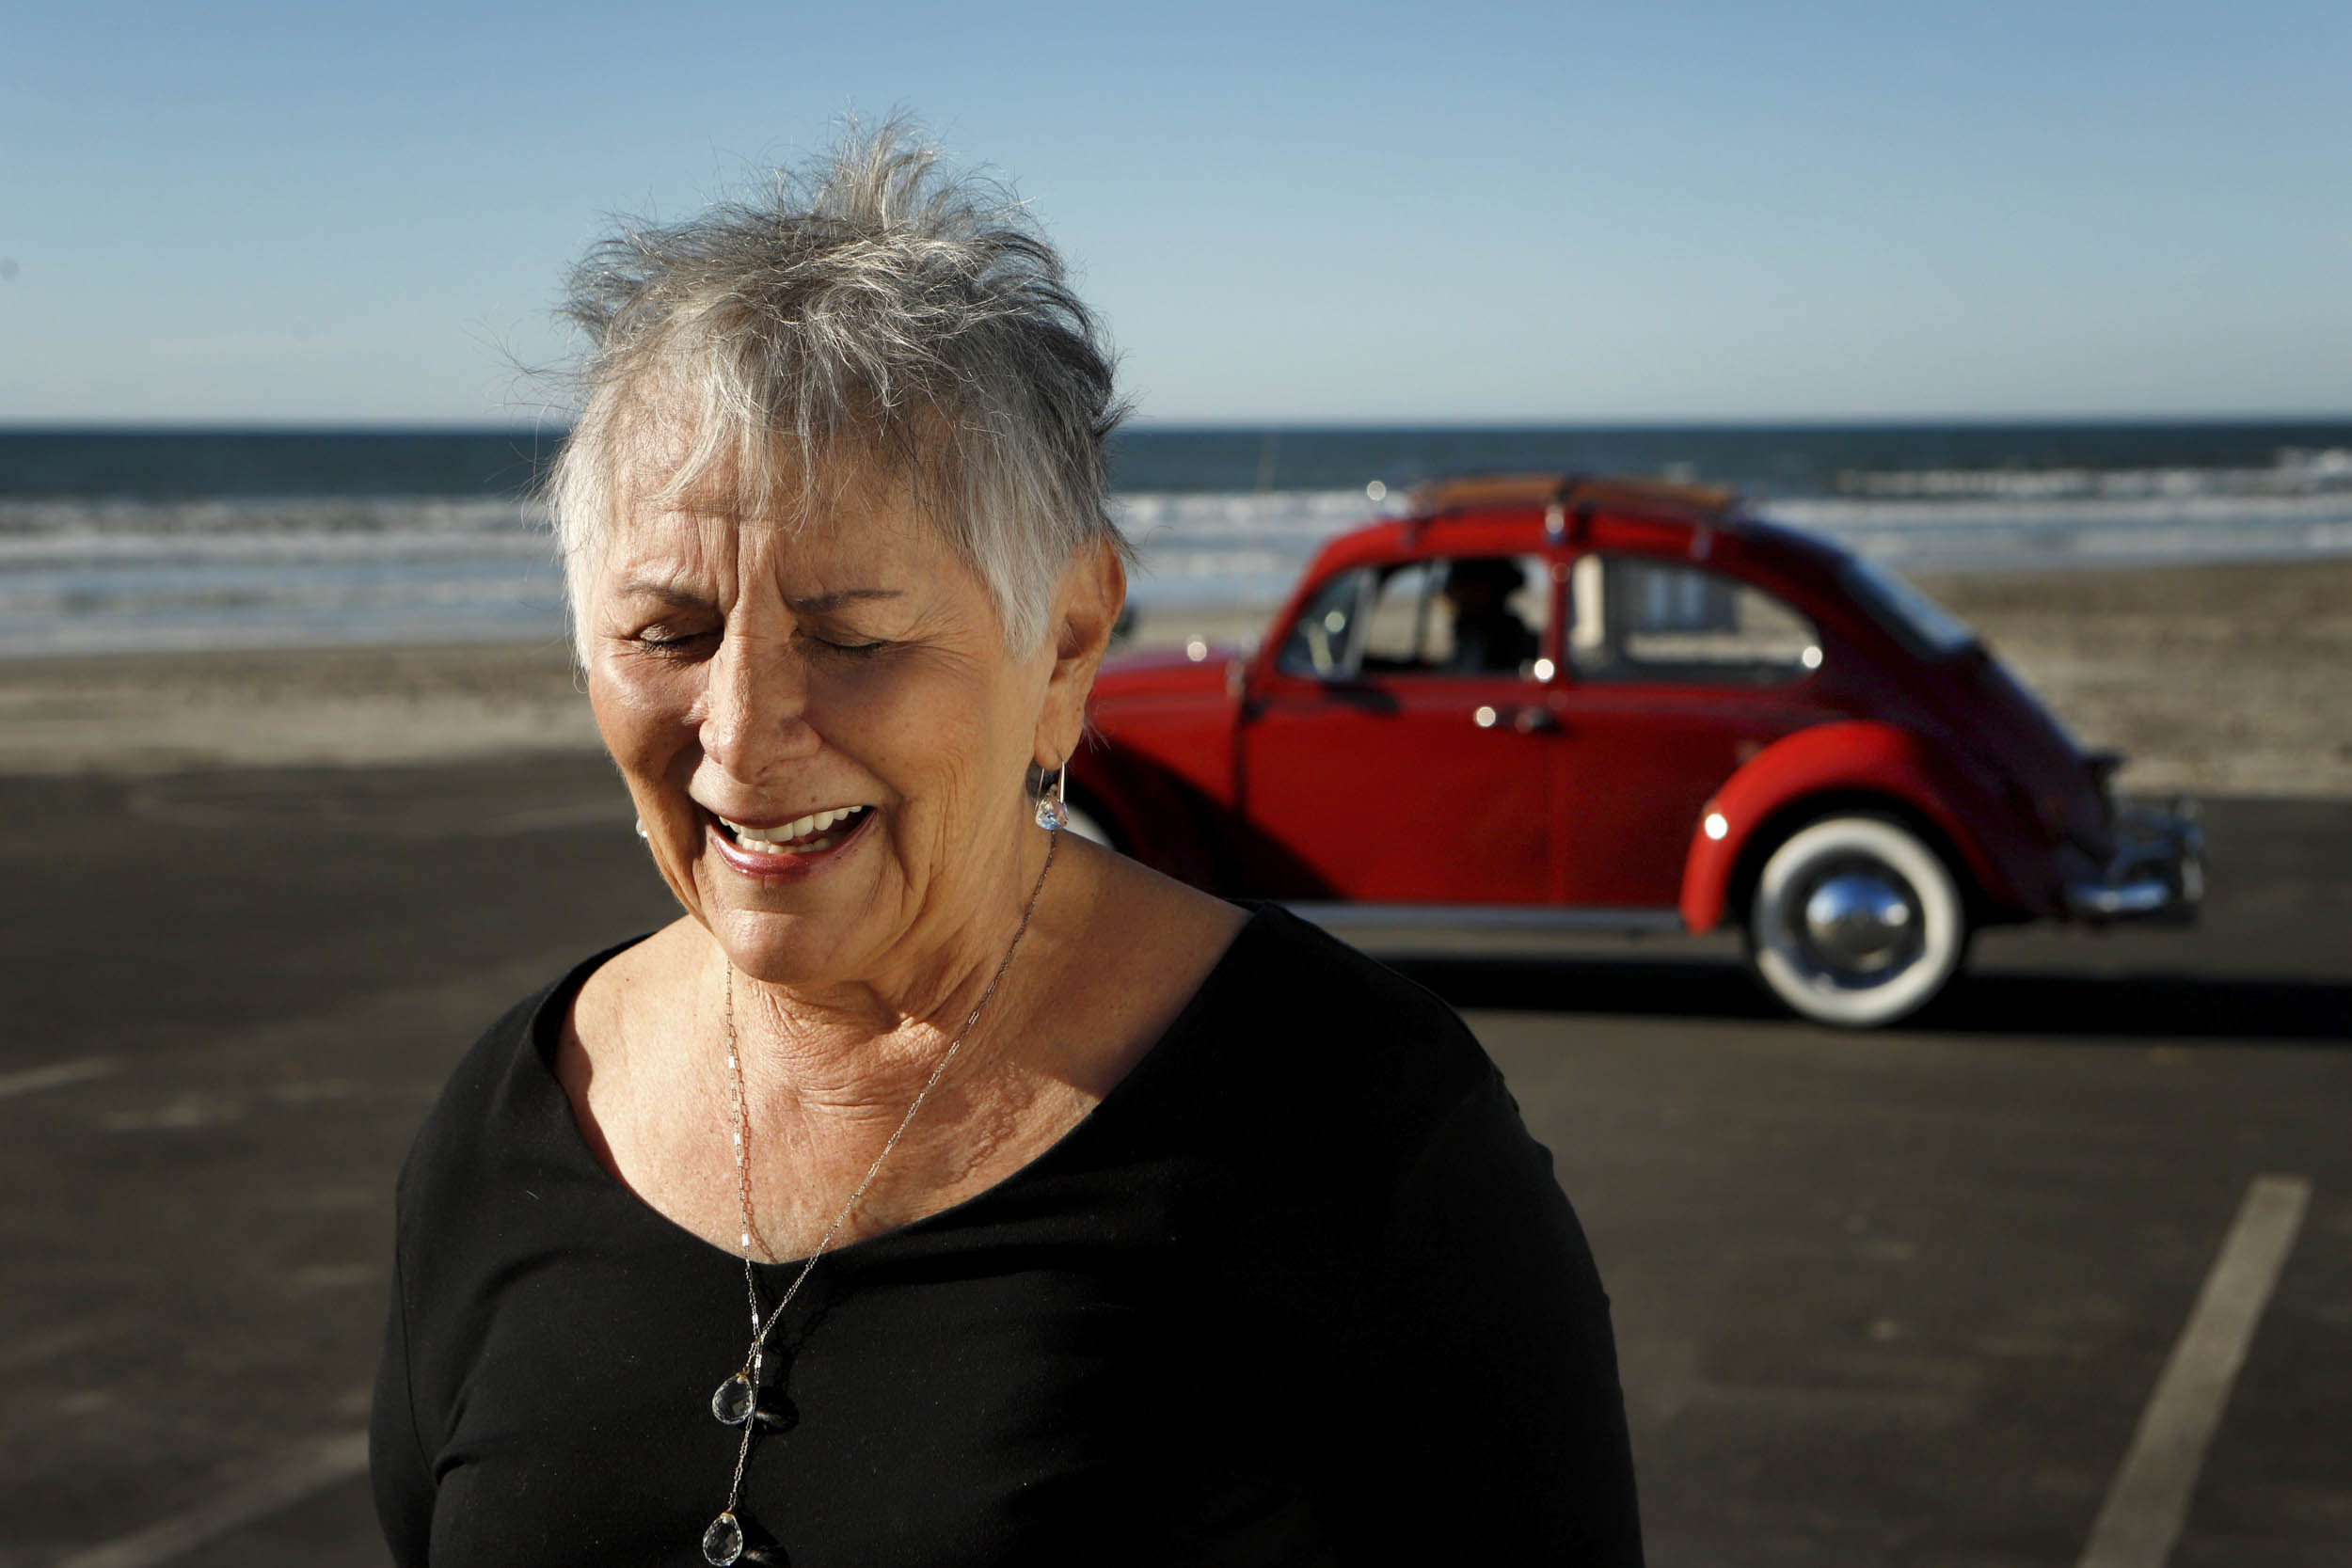 Annie receiving her restored 1967 Volkswagen Beetle